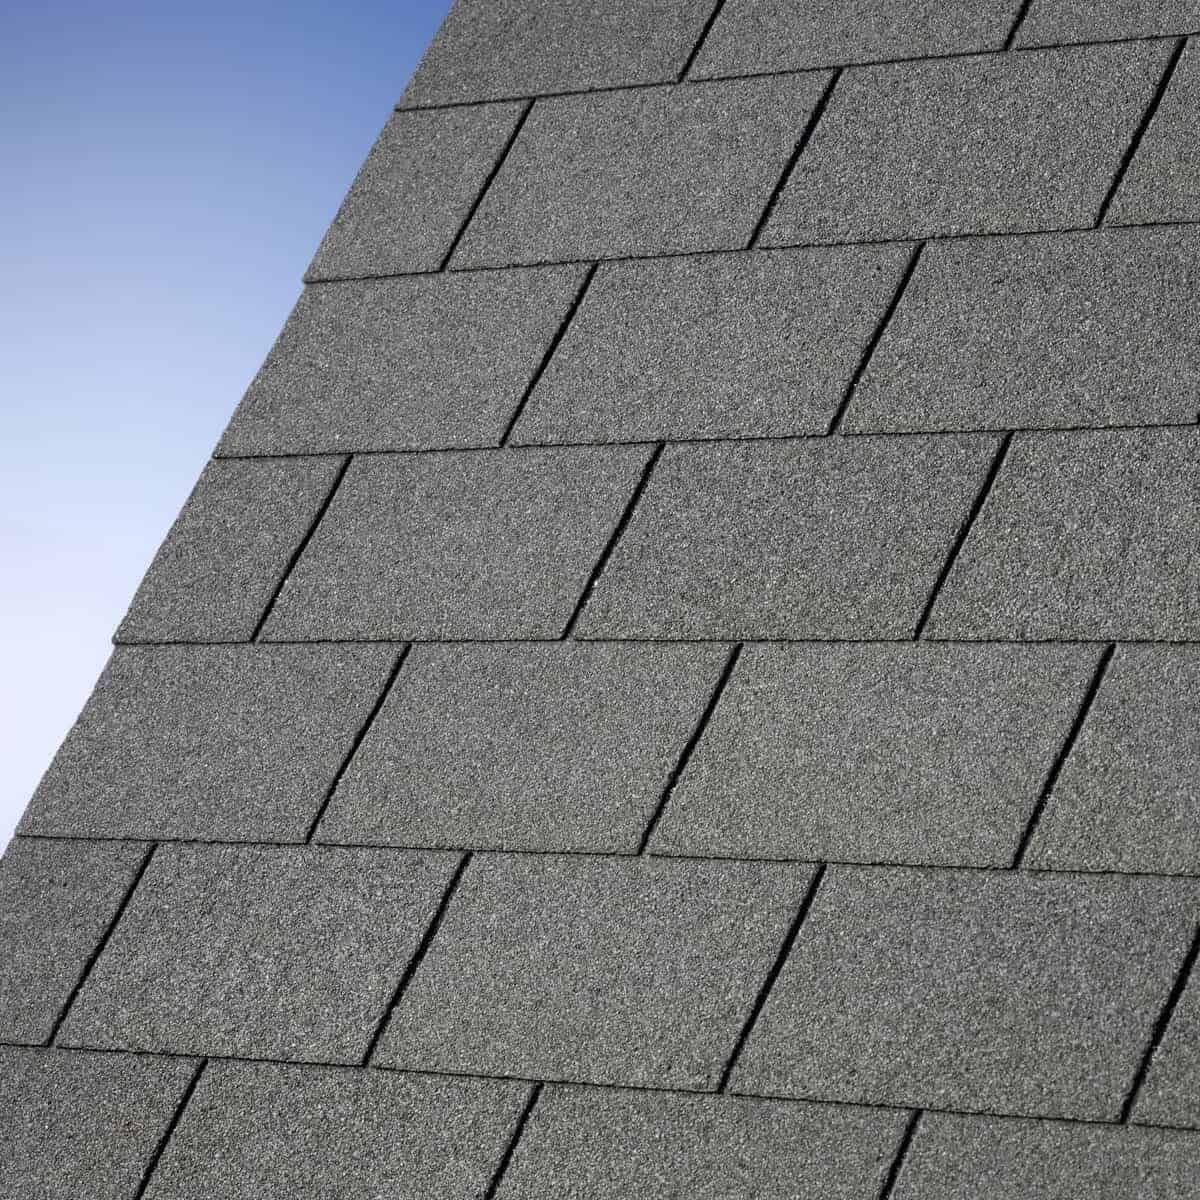 Armourglass Square Butt Shingles Ajw Distribution